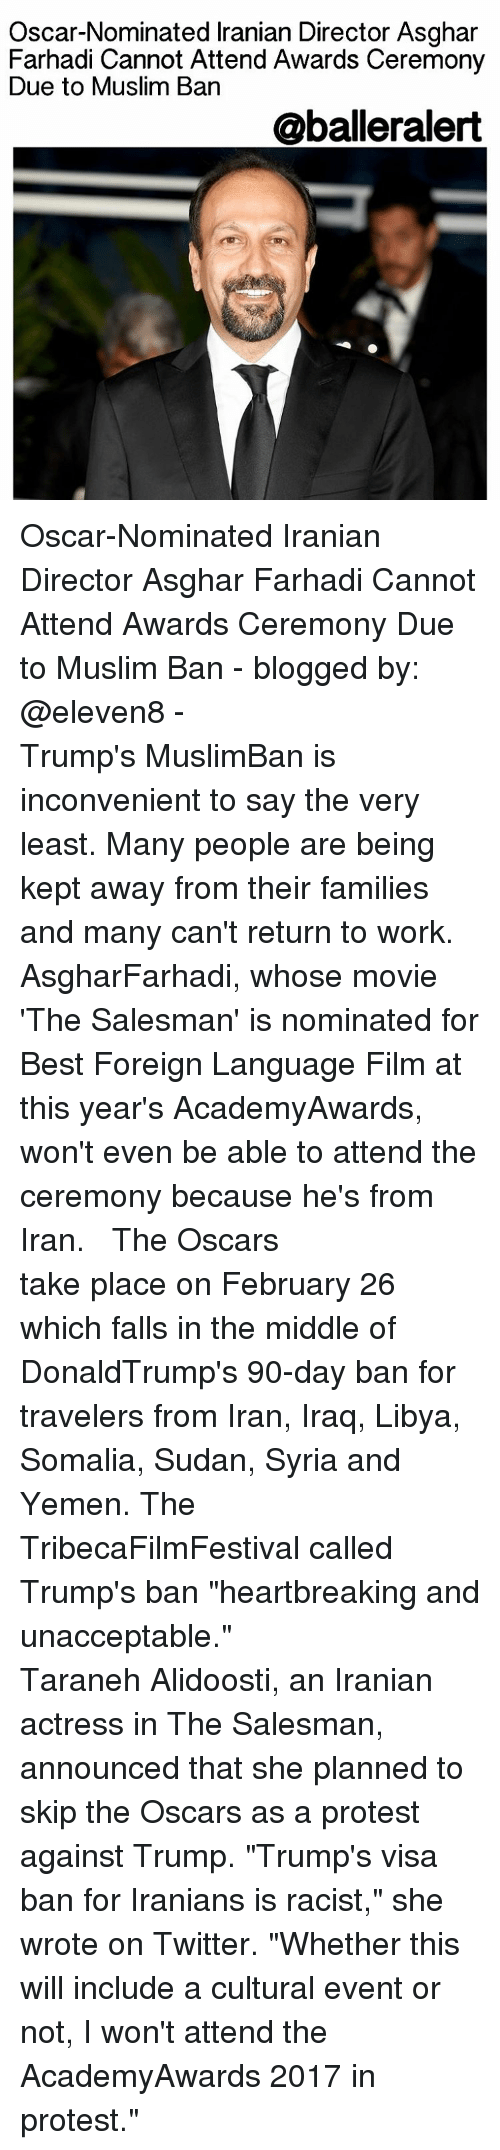 "Unaccept: Oscar-Nominated lranian Director Asghar  Farhadi Cannot Attend Awards Ceremony  Due to Muslim Ban  @balleralert Oscar-Nominated Iranian Director Asghar Farhadi Cannot Attend Awards Ceremony Due to Muslim Ban - blogged by: @eleven8 - ⠀⠀⠀⠀⠀⠀⠀⠀⠀ ⠀⠀⠀⠀⠀⠀⠀⠀⠀ Trump's MuslimBan is inconvenient to say the very least. Many people are being kept away from their families and many can't return to work. AsgharFarhadi, whose movie 'The Salesman' is nominated for Best Foreign Language Film at this year's AcademyAwards, won't even be able to attend the ceremony because he's from Iran. ⠀⠀⠀⠀⠀⠀⠀⠀⠀ ⠀⠀⠀⠀⠀⠀⠀⠀⠀ The Oscars take place on February 26 which falls in the middle of DonaldTrump's 90-day ban for travelers from Iran, Iraq, Libya, Somalia, Sudan, Syria and Yemen. The TribecaFilmFestival called Trump's ban ""heartbreaking and unacceptable."" ⠀⠀⠀⠀⠀⠀⠀⠀⠀ ⠀⠀⠀⠀⠀⠀⠀⠀⠀ Taraneh Alidoosti, an Iranian actress in The Salesman, announced that she planned to skip the Oscars as a protest against Trump. ""Trump's visa ban for Iranians is racist,"" she wrote on Twitter. ""Whether this will include a cultural event or not, I won't attend the AcademyAwards 2017 in protest."""